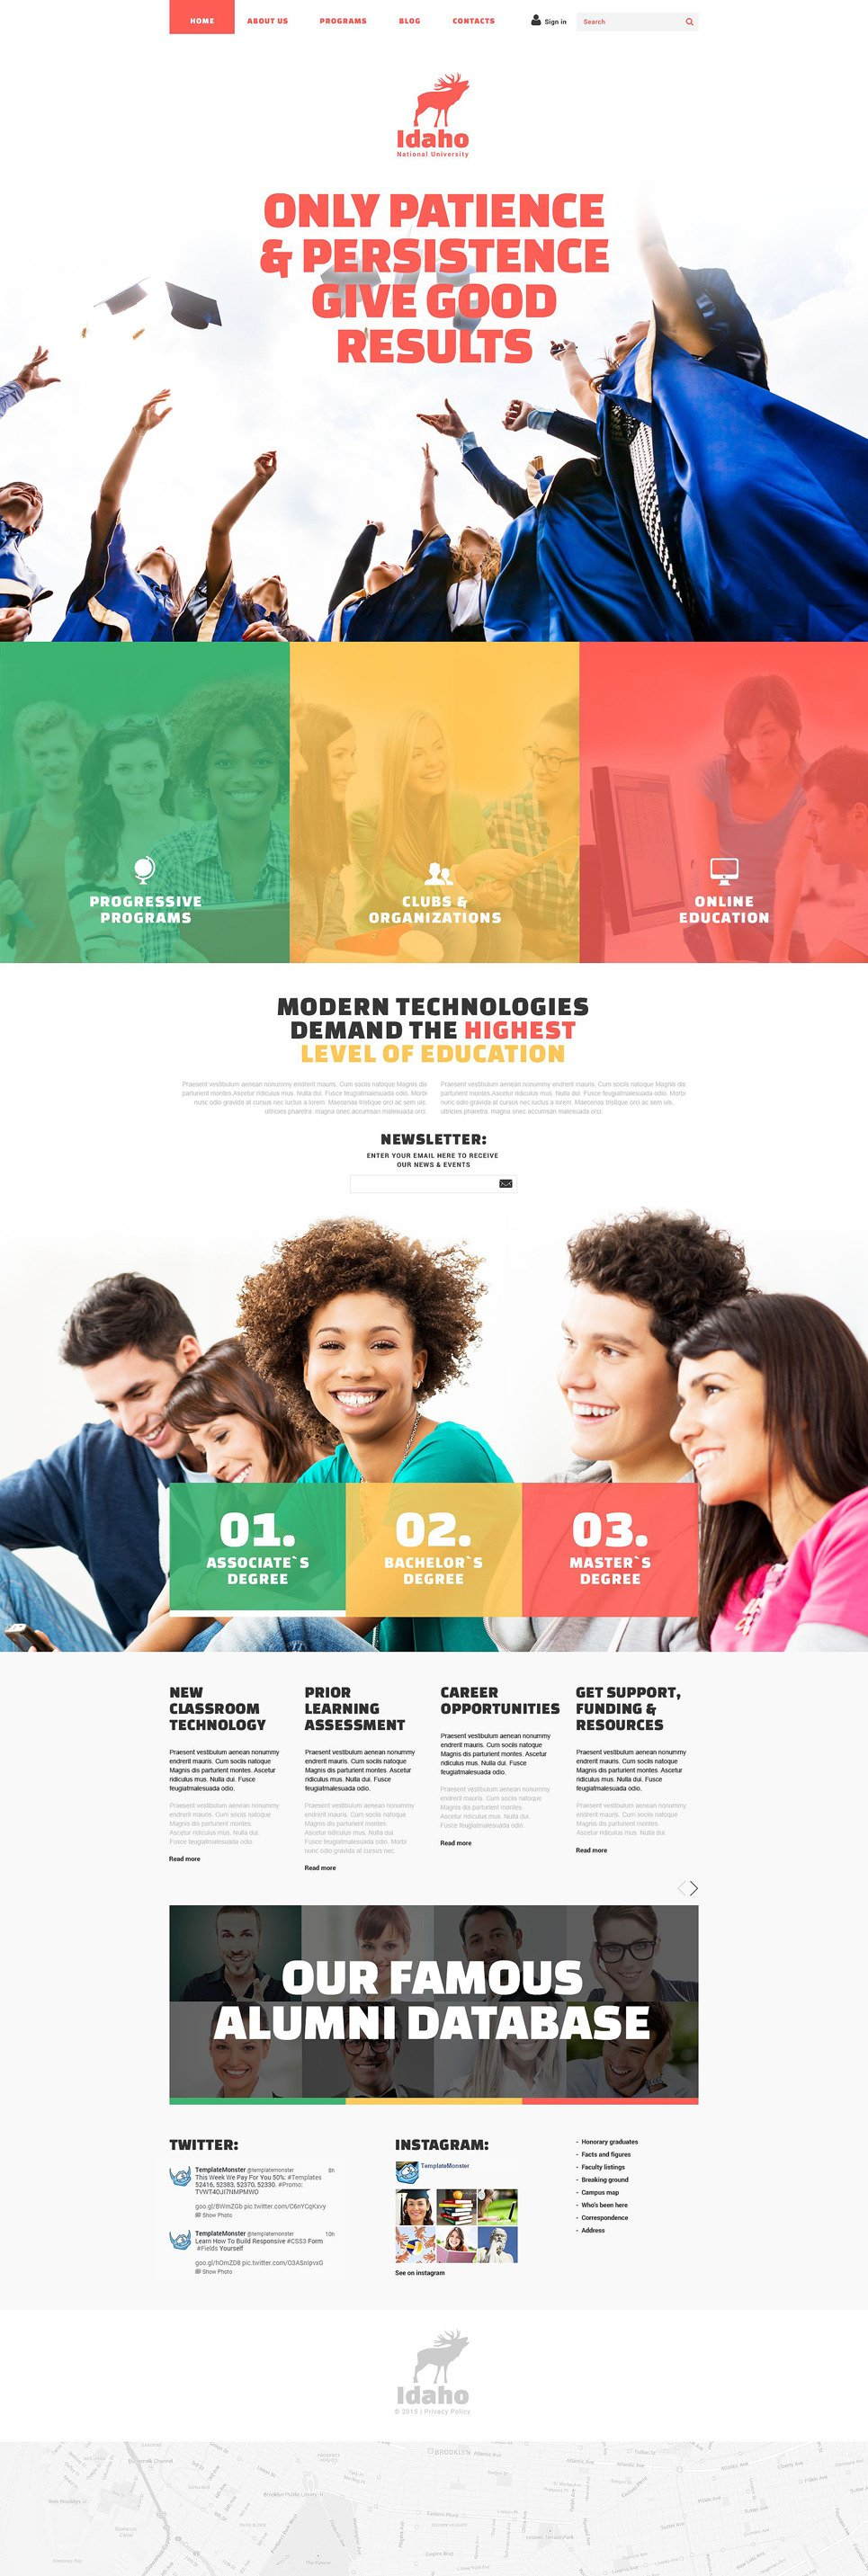 Education Joomla Template New Screenshots BIG